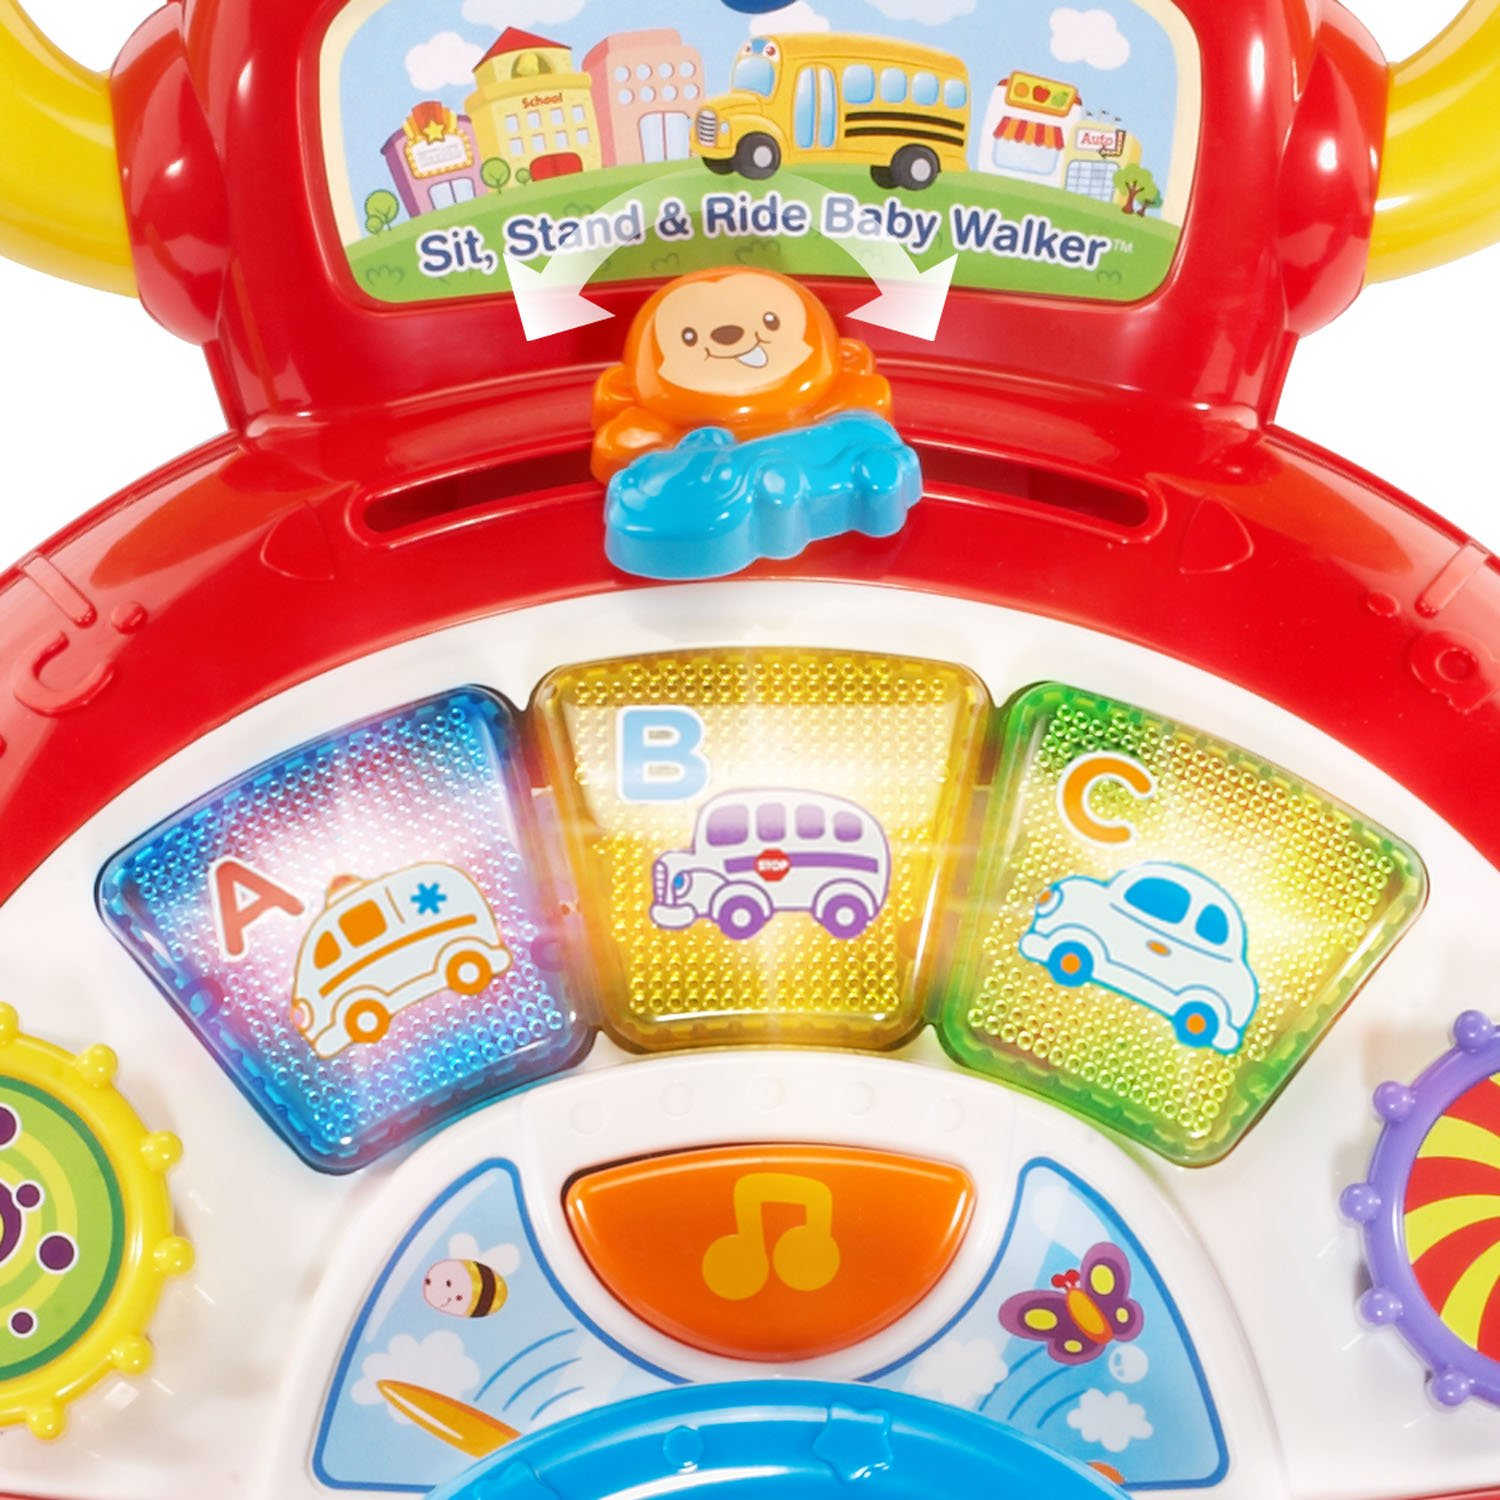 VTech Sit, Stand and Ride Baby Walker (Frustration Free Packaging) (Amazon Exclusive) by VTech (Image #5)